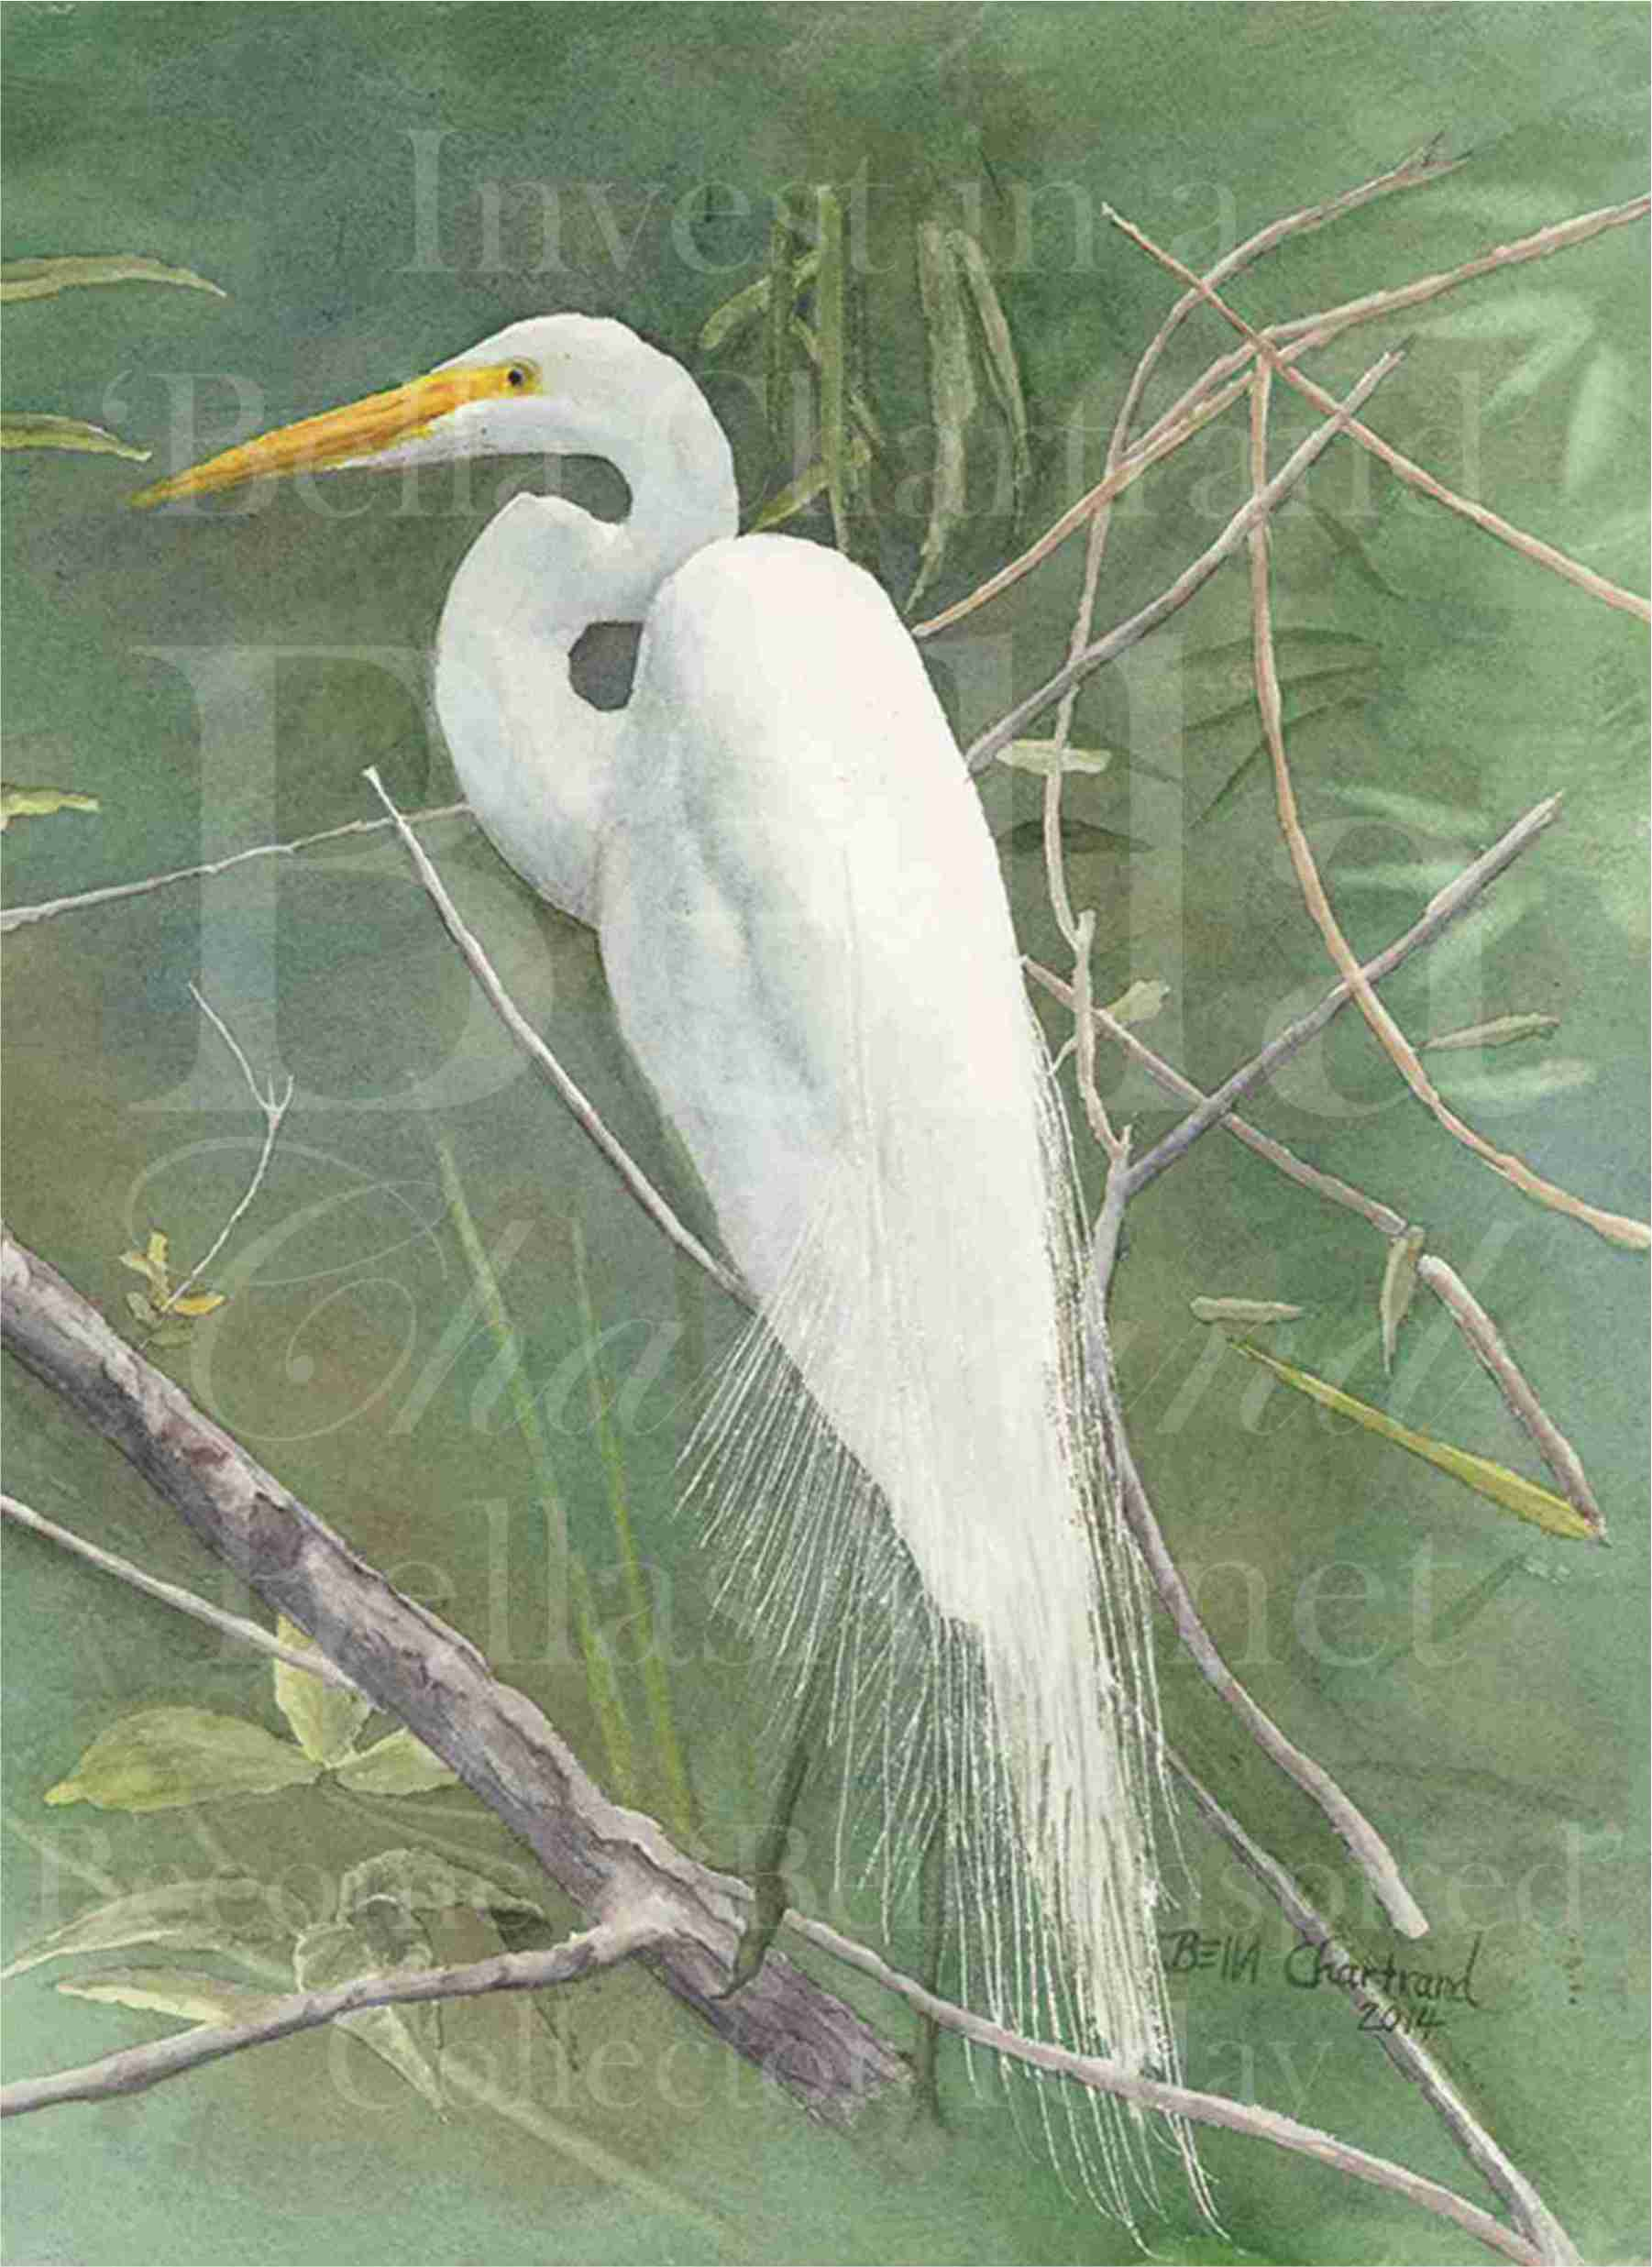 """Egret"" by Bella Chartrand from Utopia USA 2014"